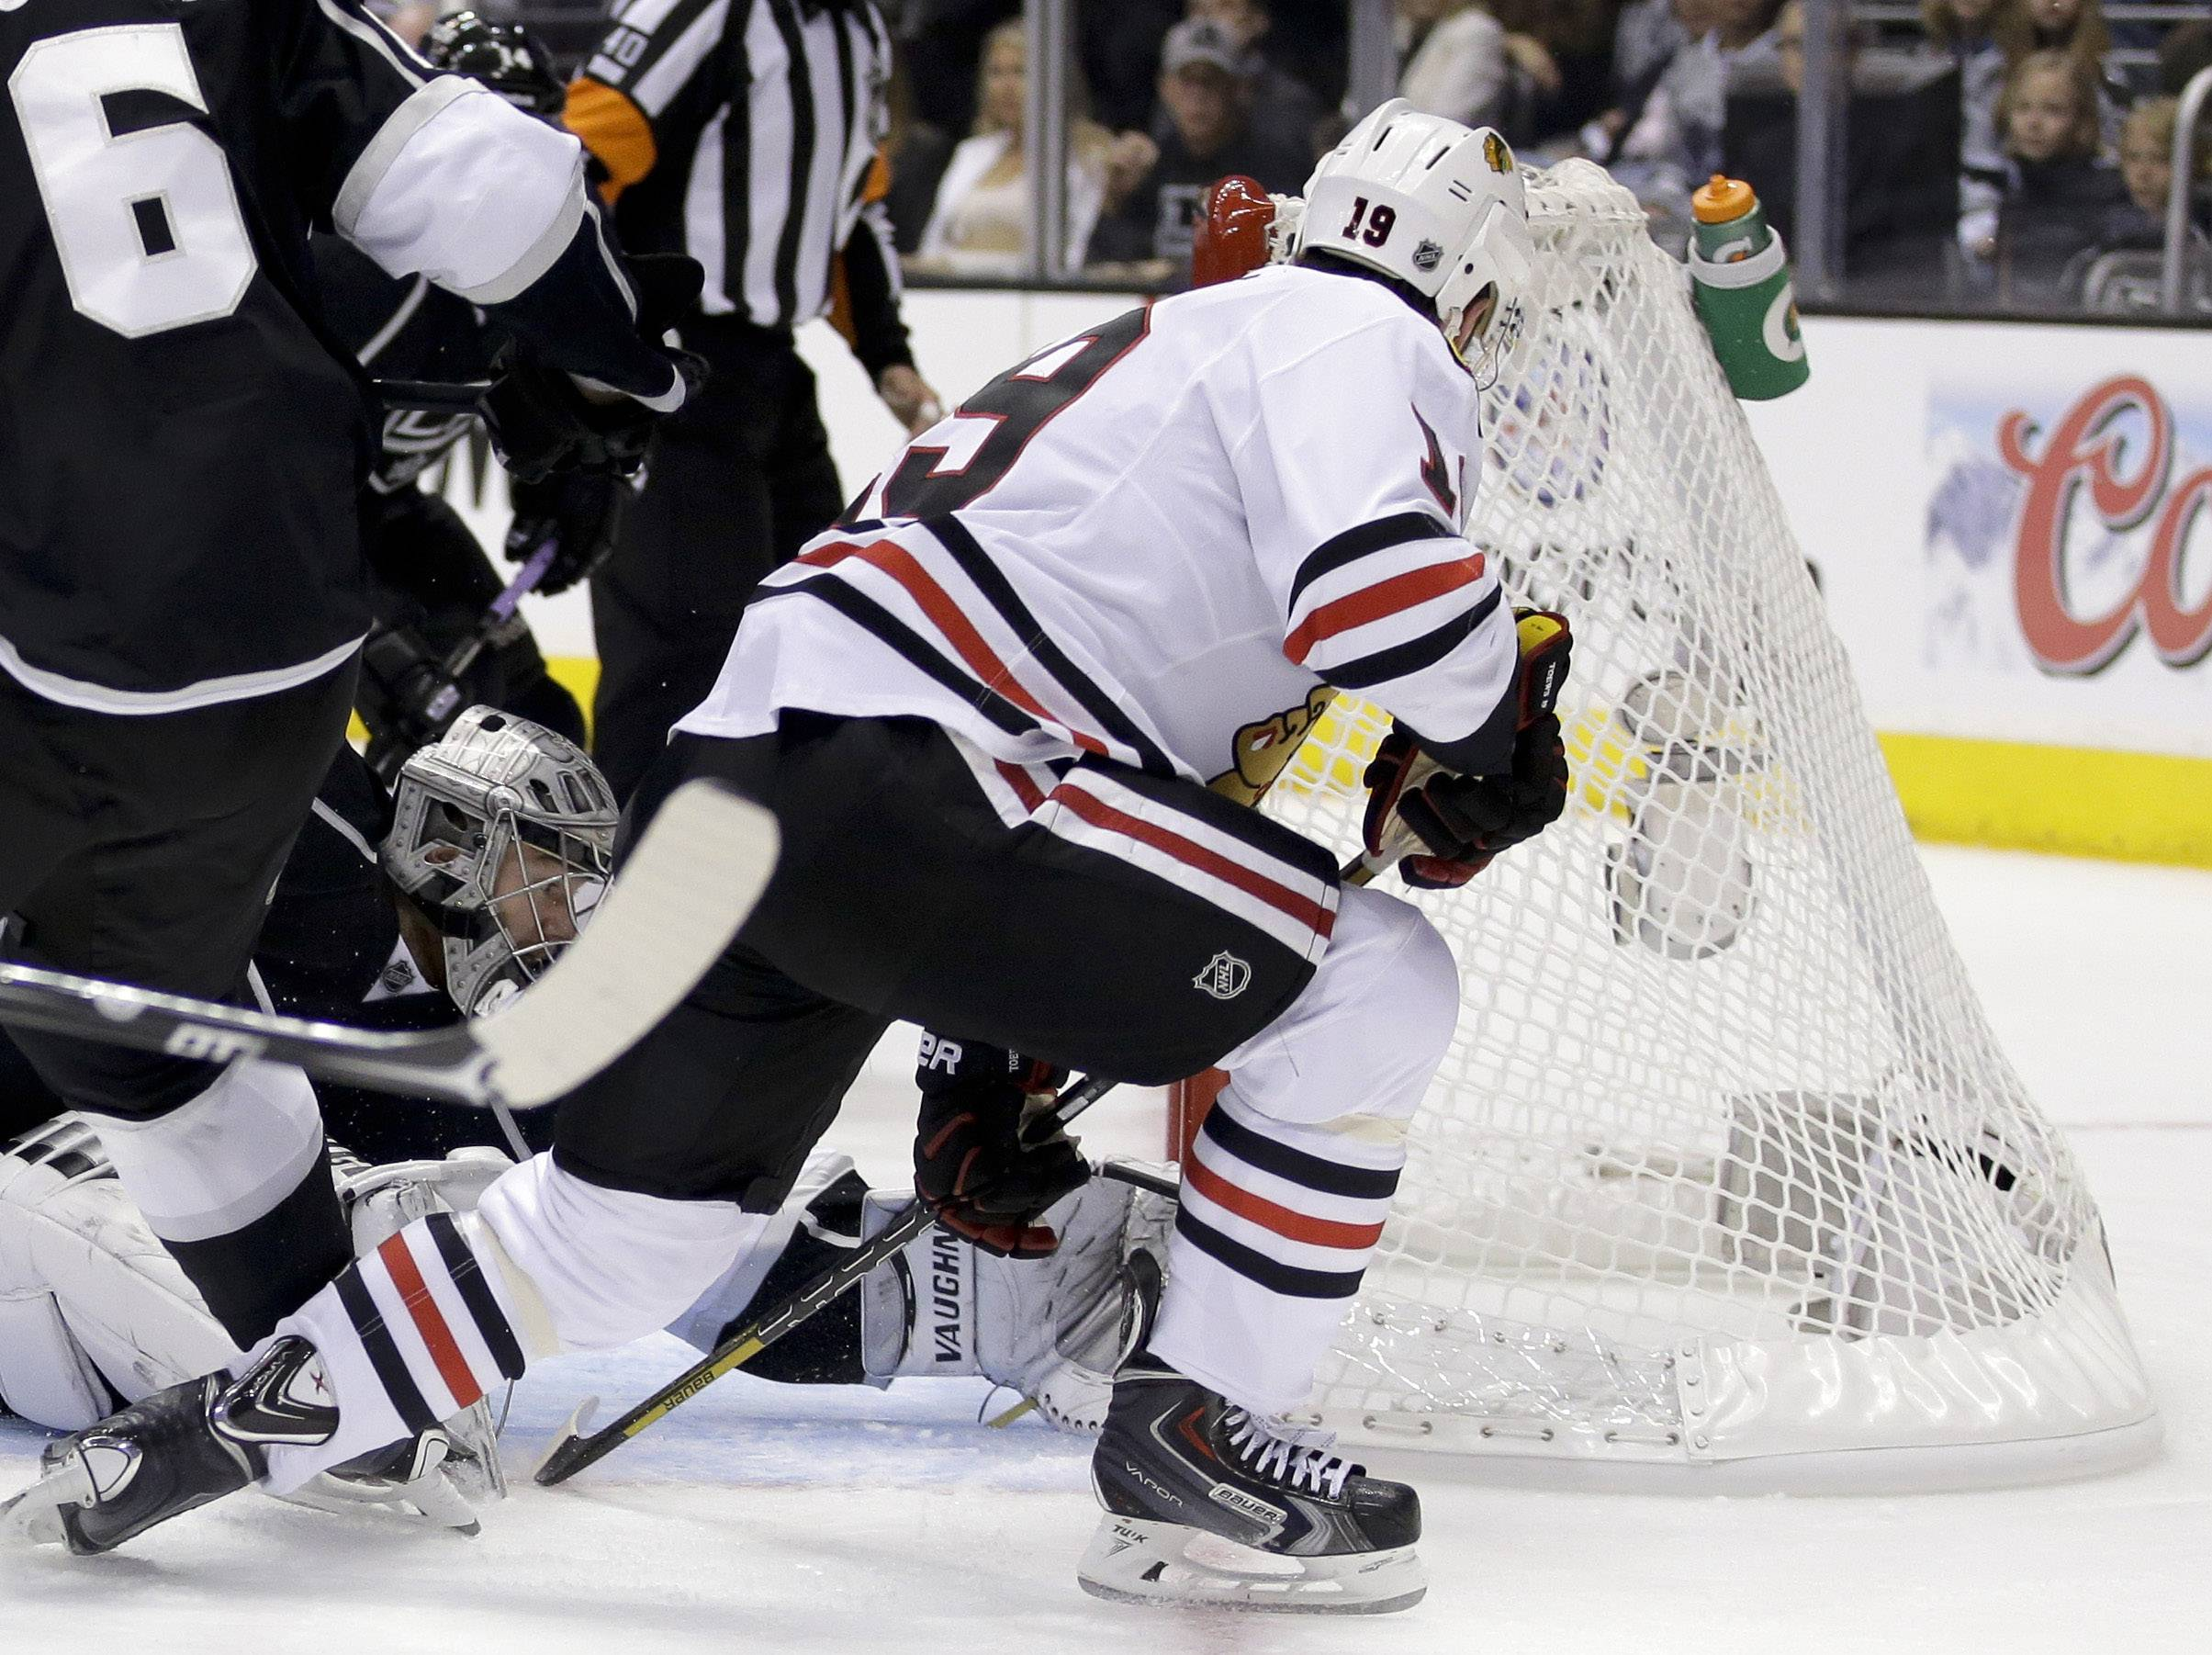 Blackhawks center Jonathan Toews, right, scores past Los Angeles Kings goalie Jonathan Quick during the first period of Game 3 of the Western Conference finals of the NHL hockey Stanley Cup playoffs in Los Angeles, Saturday, May 24, 2014.